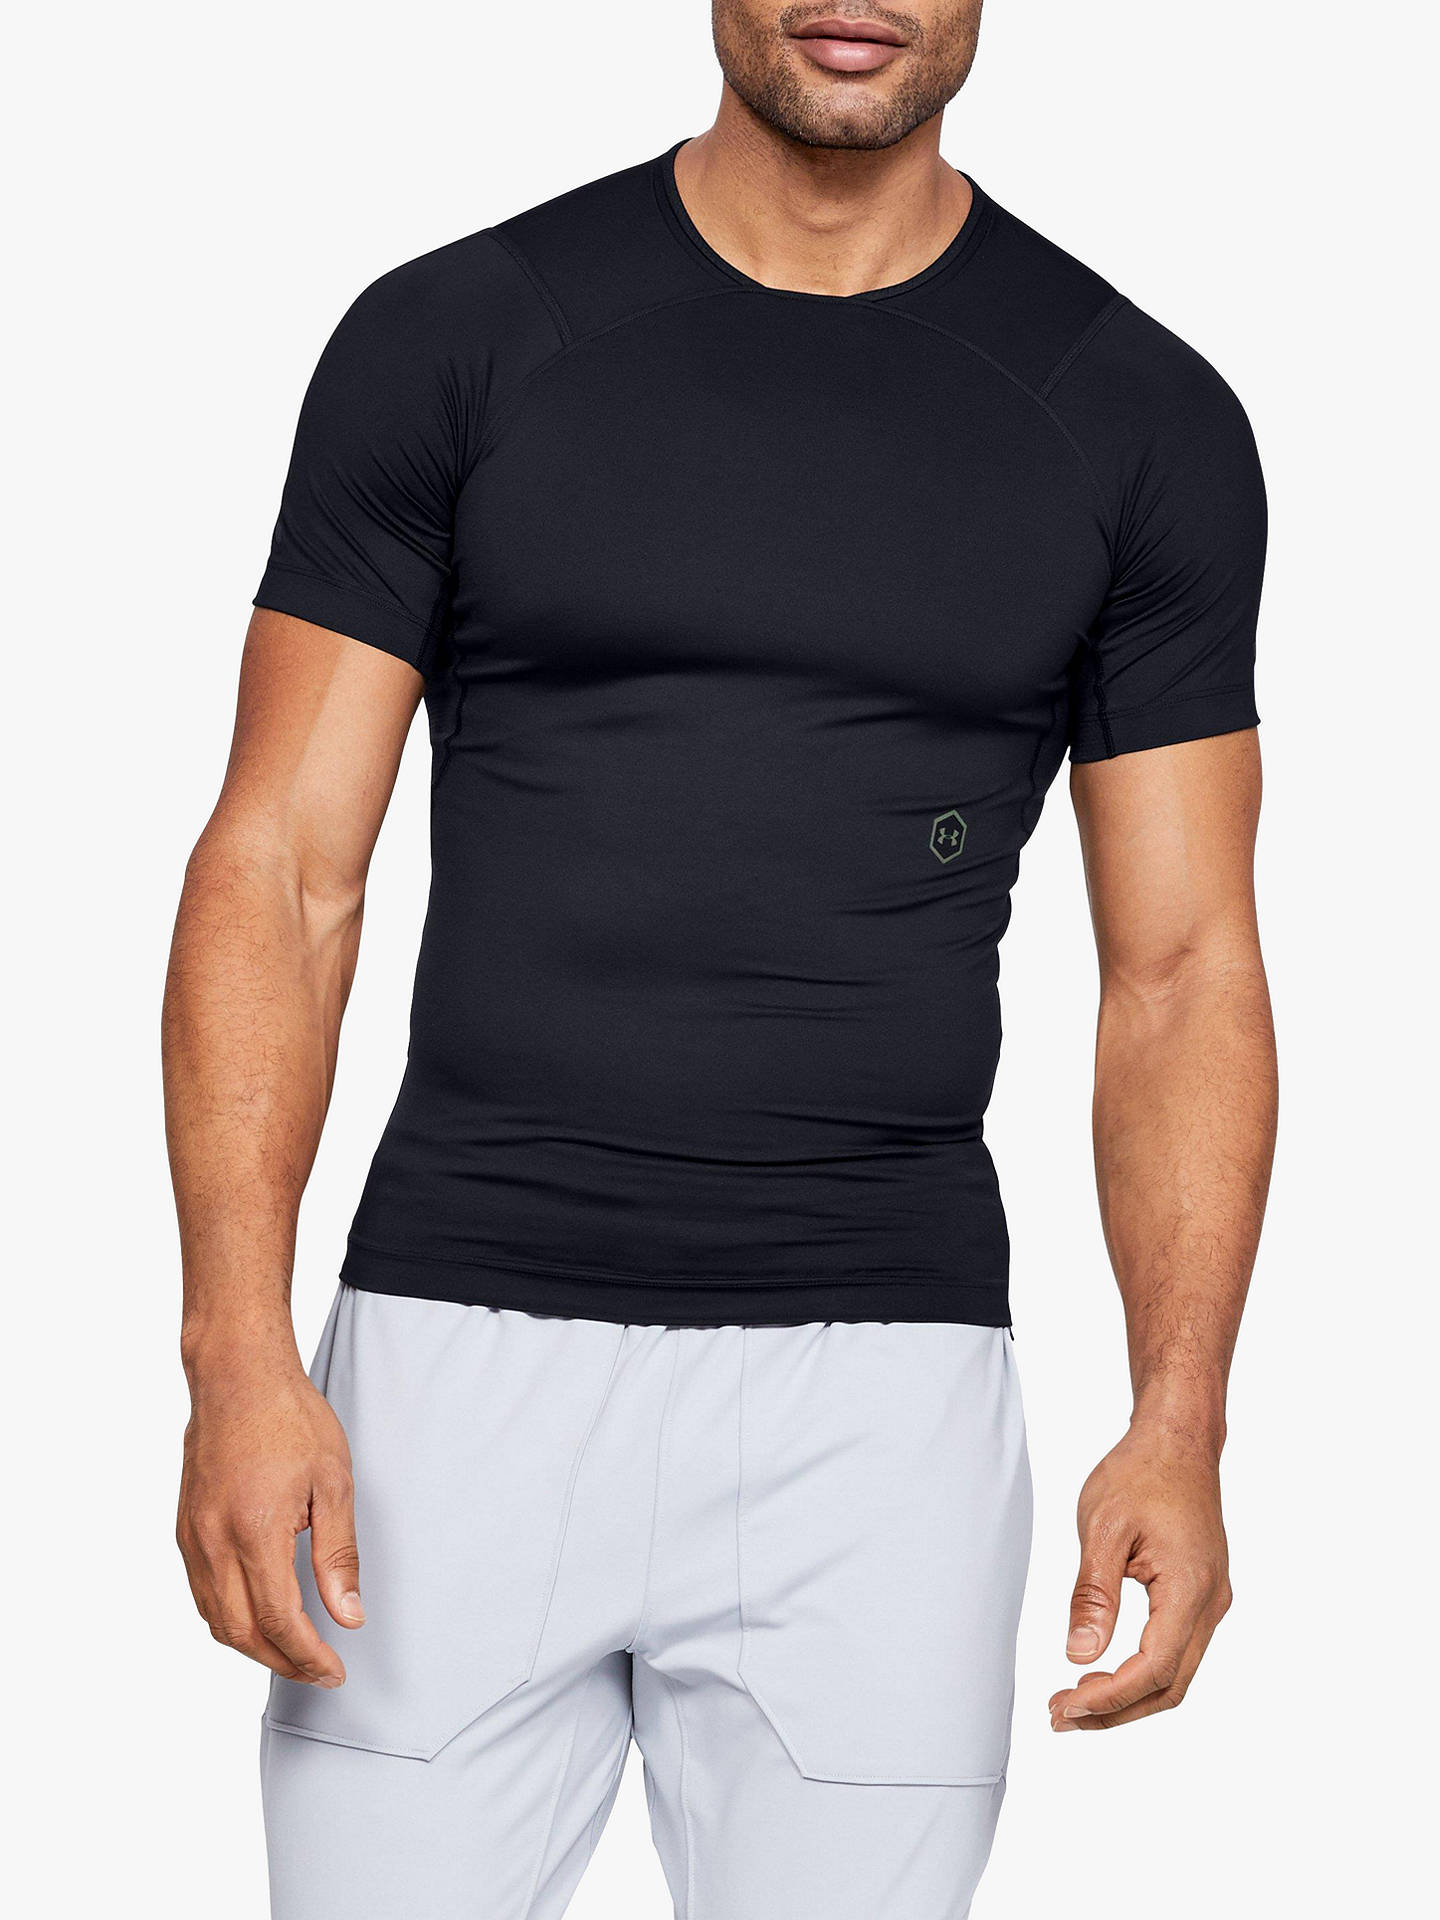 0fa75b415abb Buy Under Armour Rush Short Sleeve Compression Top